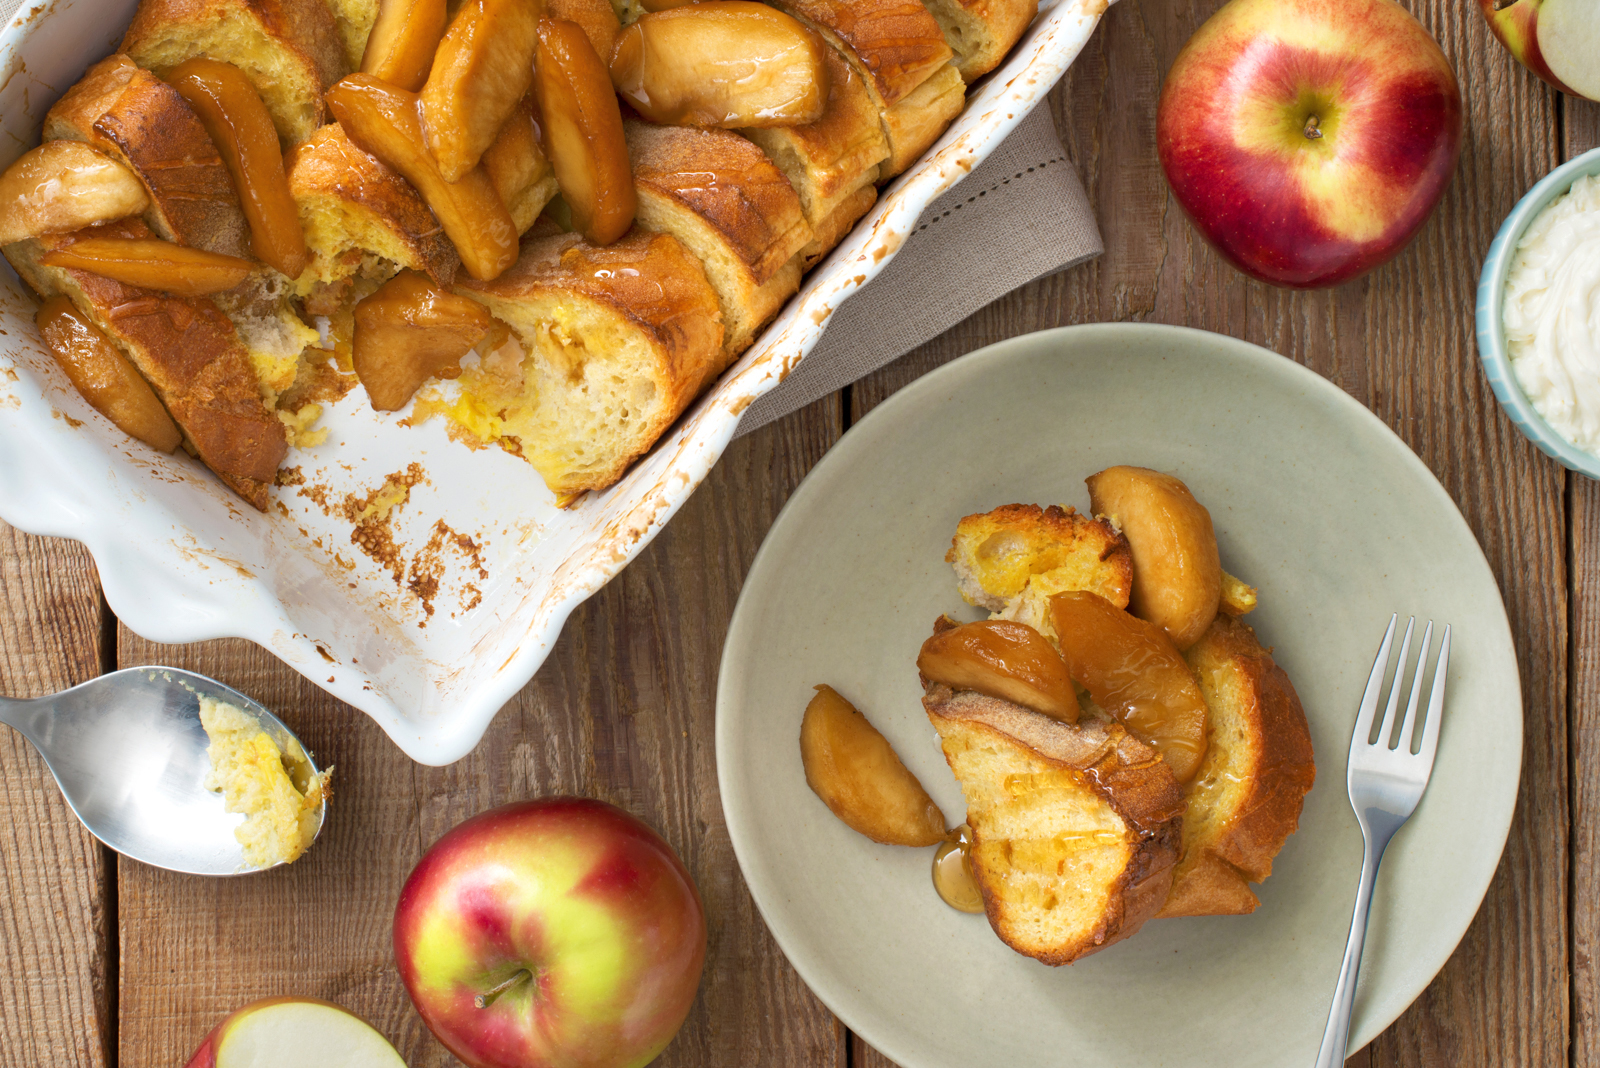 Baked French Toast with Cider Glazed Apples